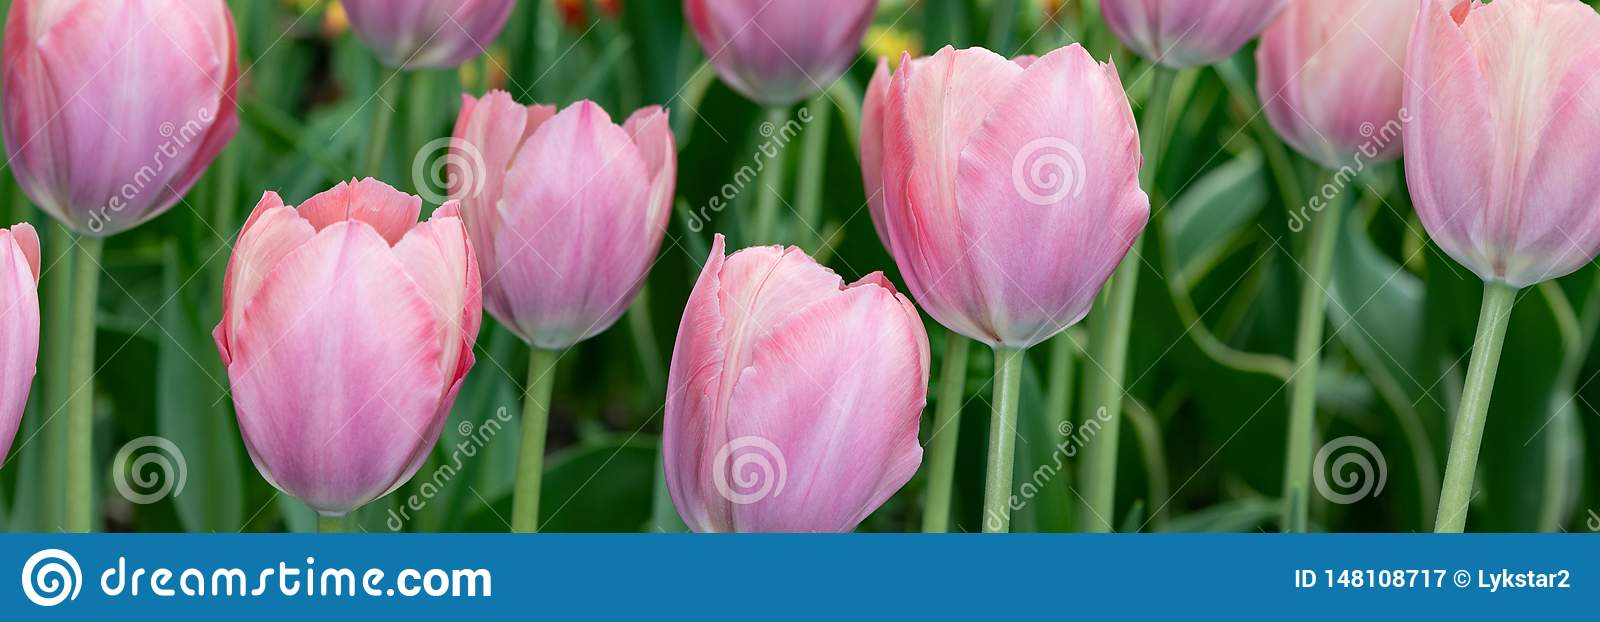 Beautiful pale pink tulips blooming in the spring Park